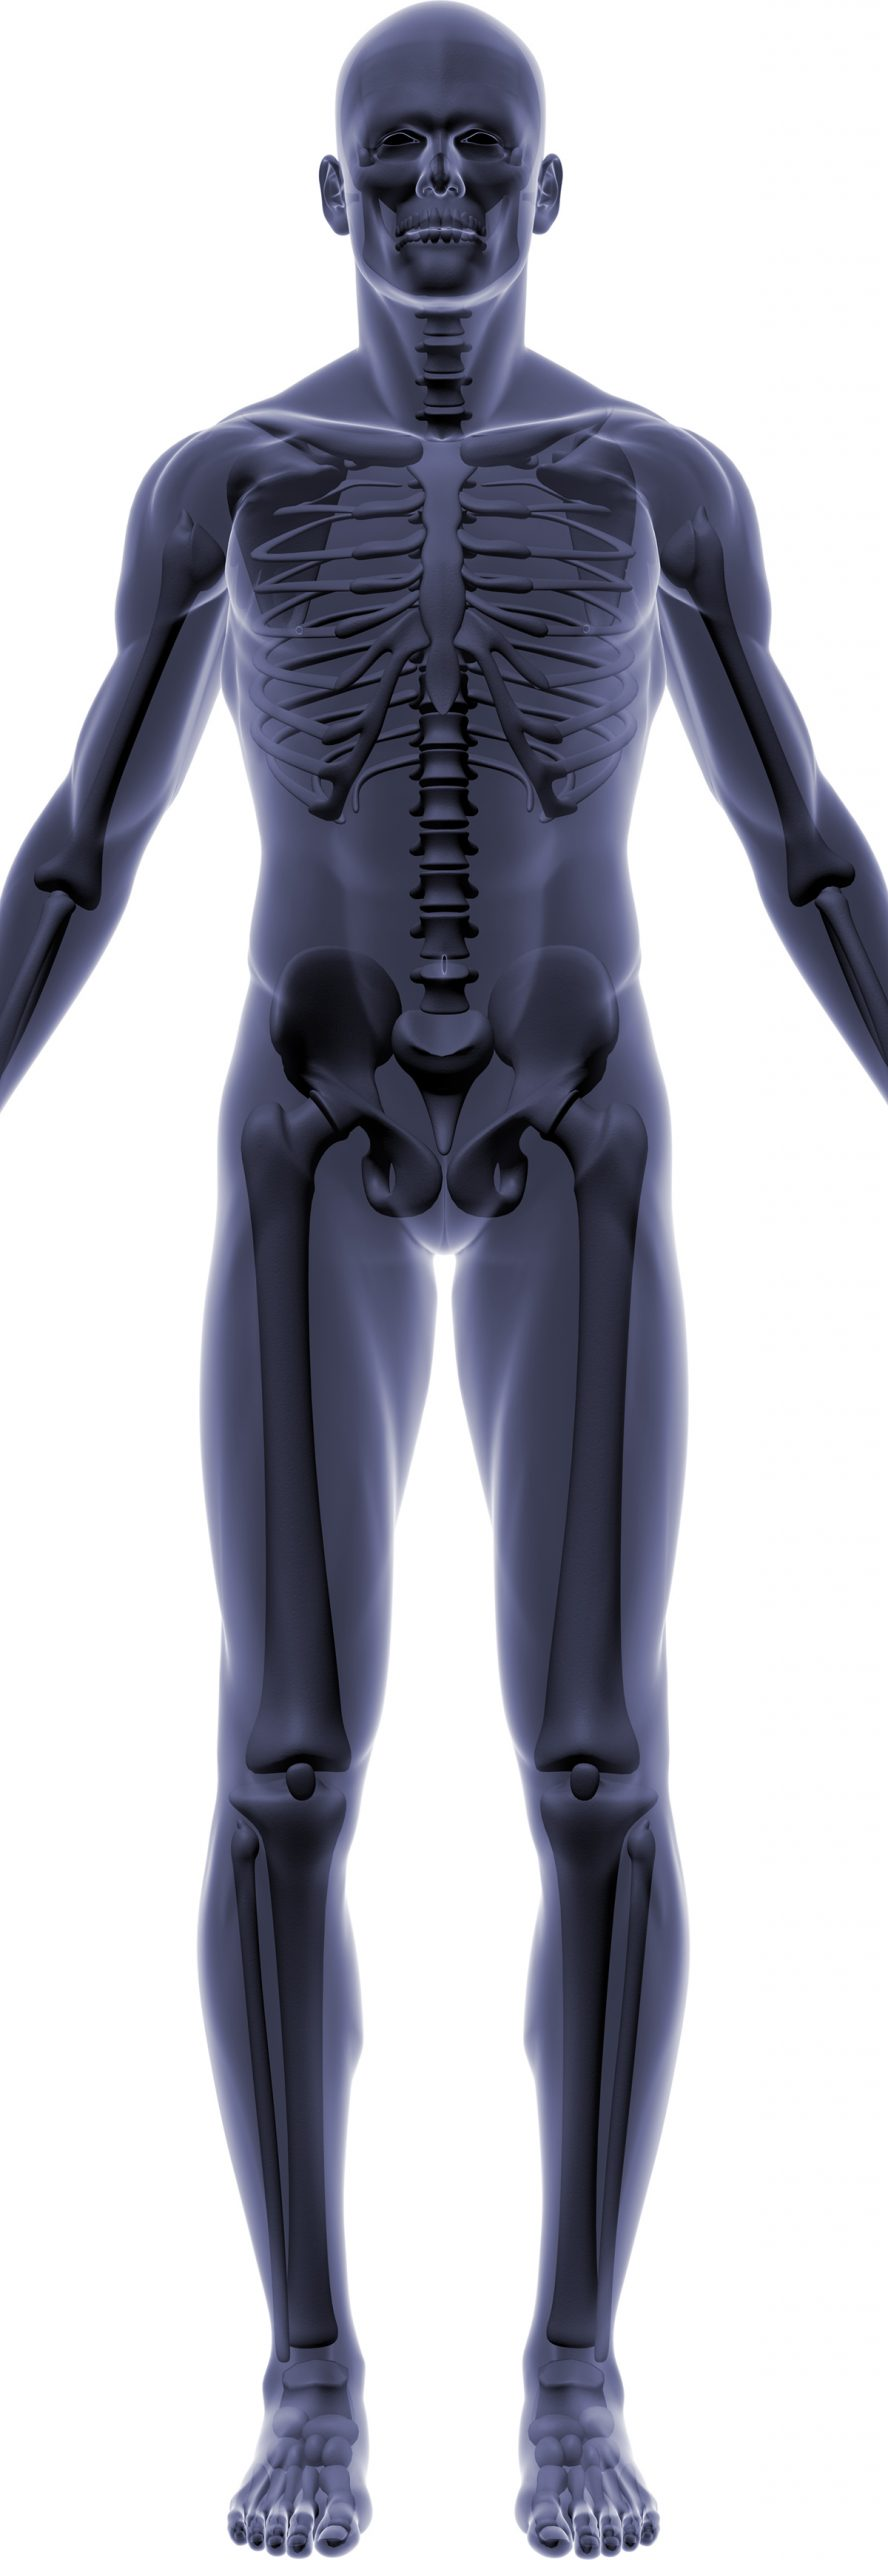 Male Transparent Body and Skeleton Diagram